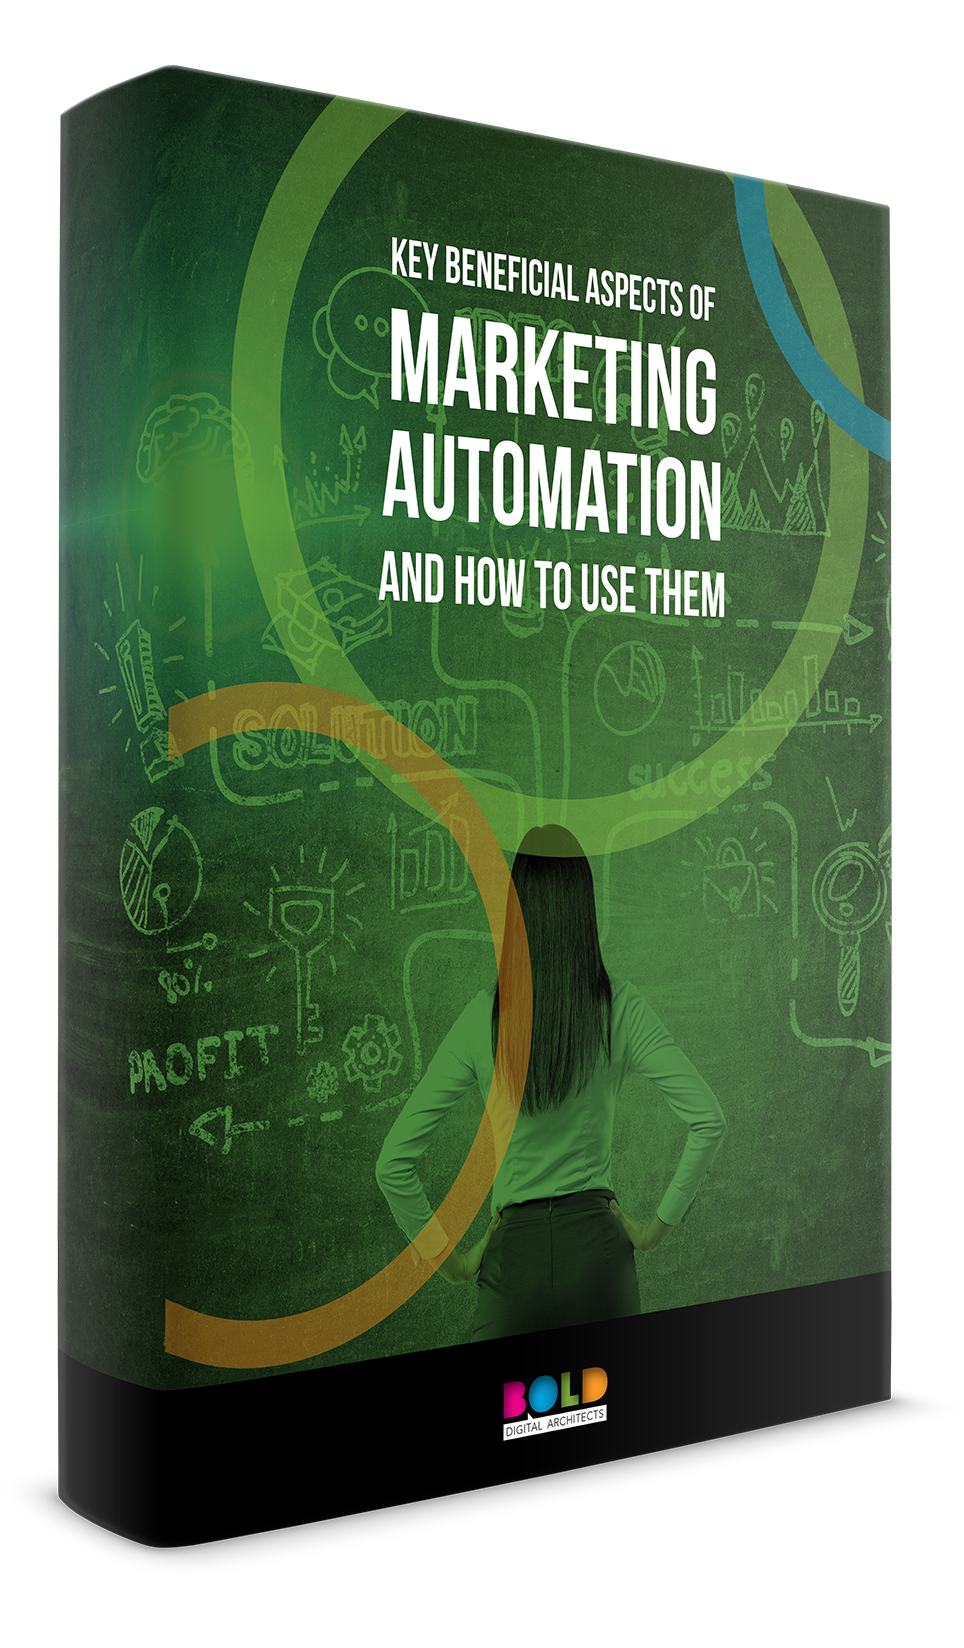 marketing_automations_key_aspects_3d_cover_2.png